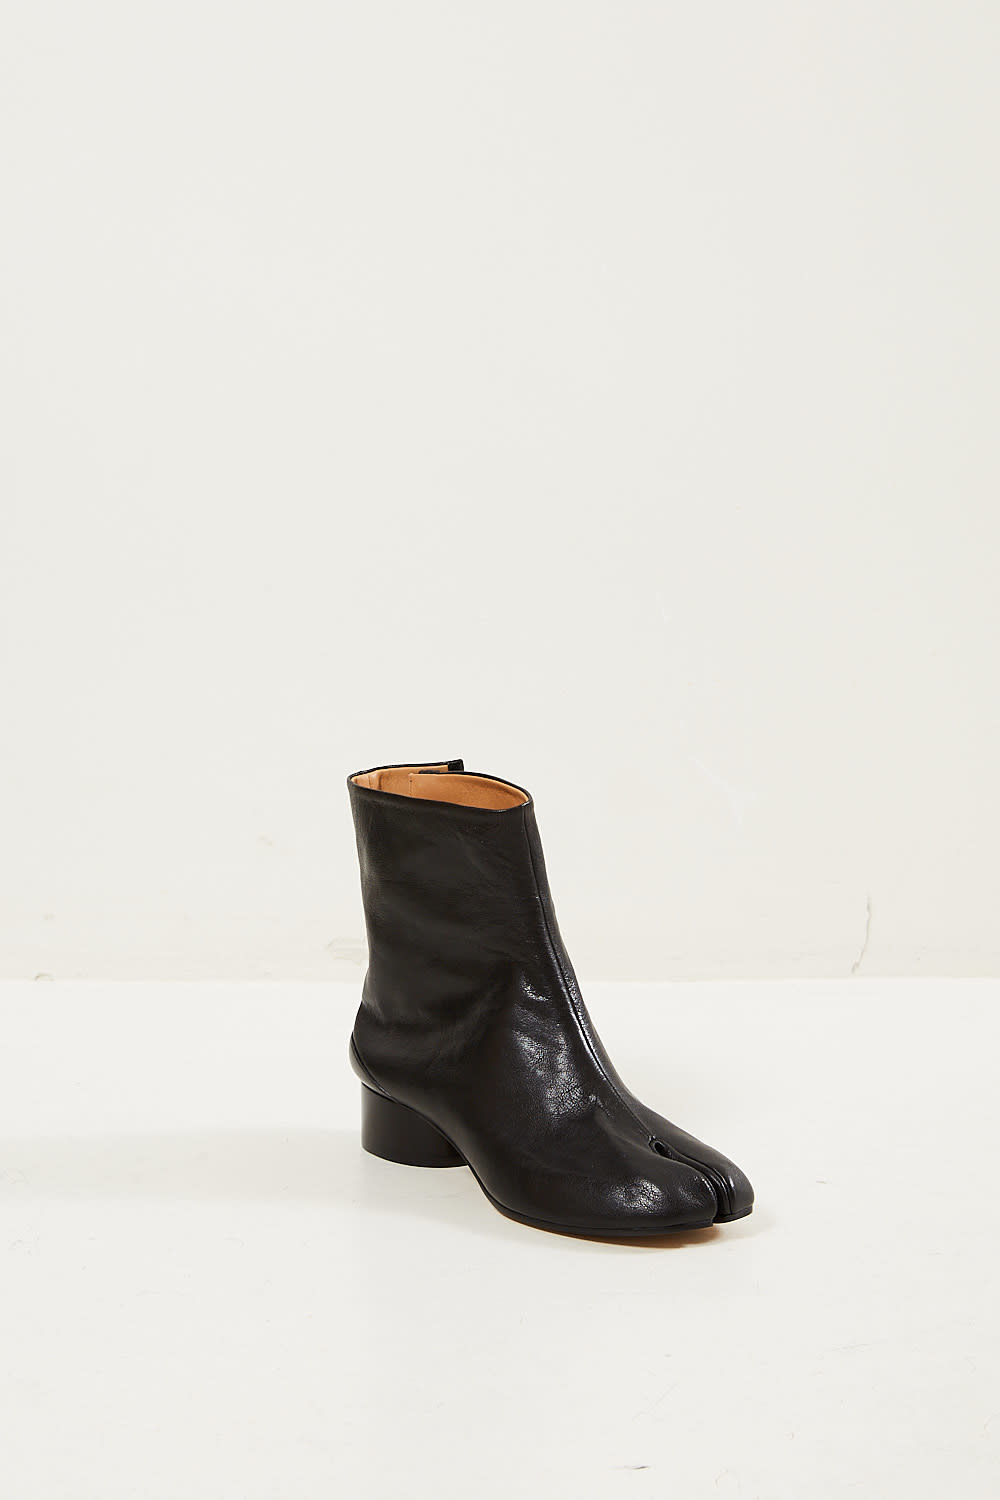 Maison Margiela Tabi vintage leather boots